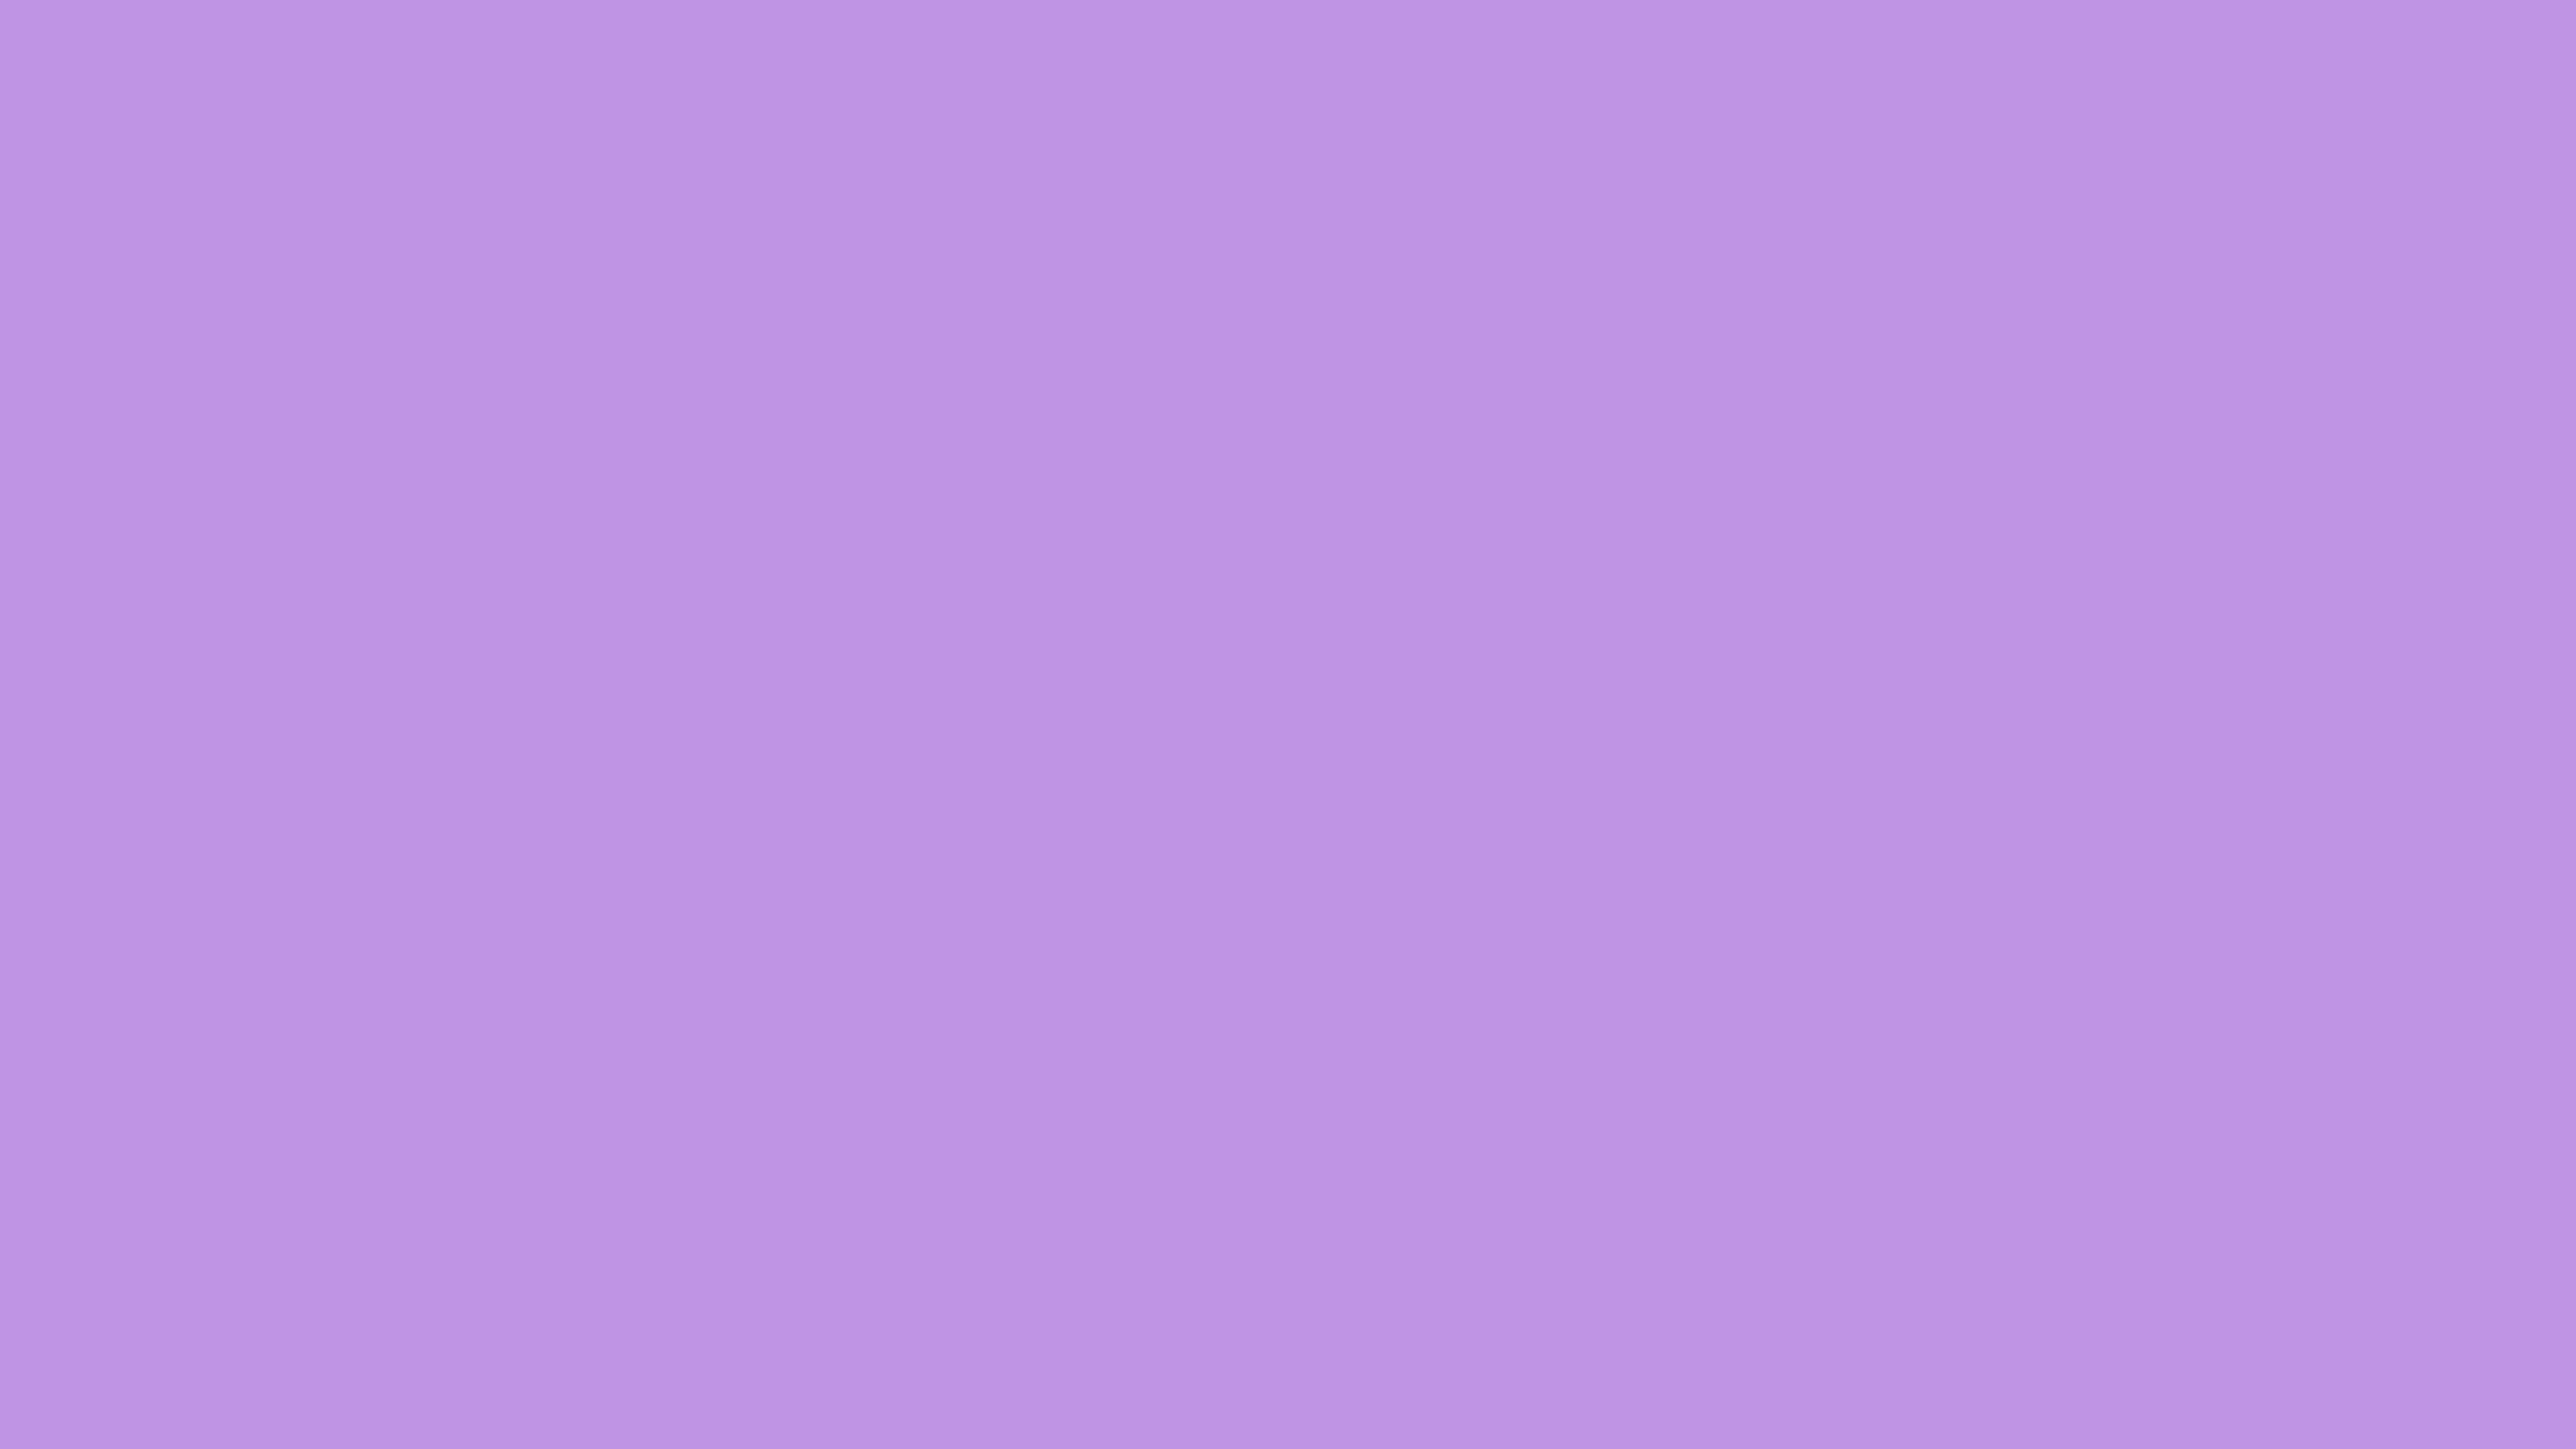 3840x2160 Bright Lavender Solid Color Background